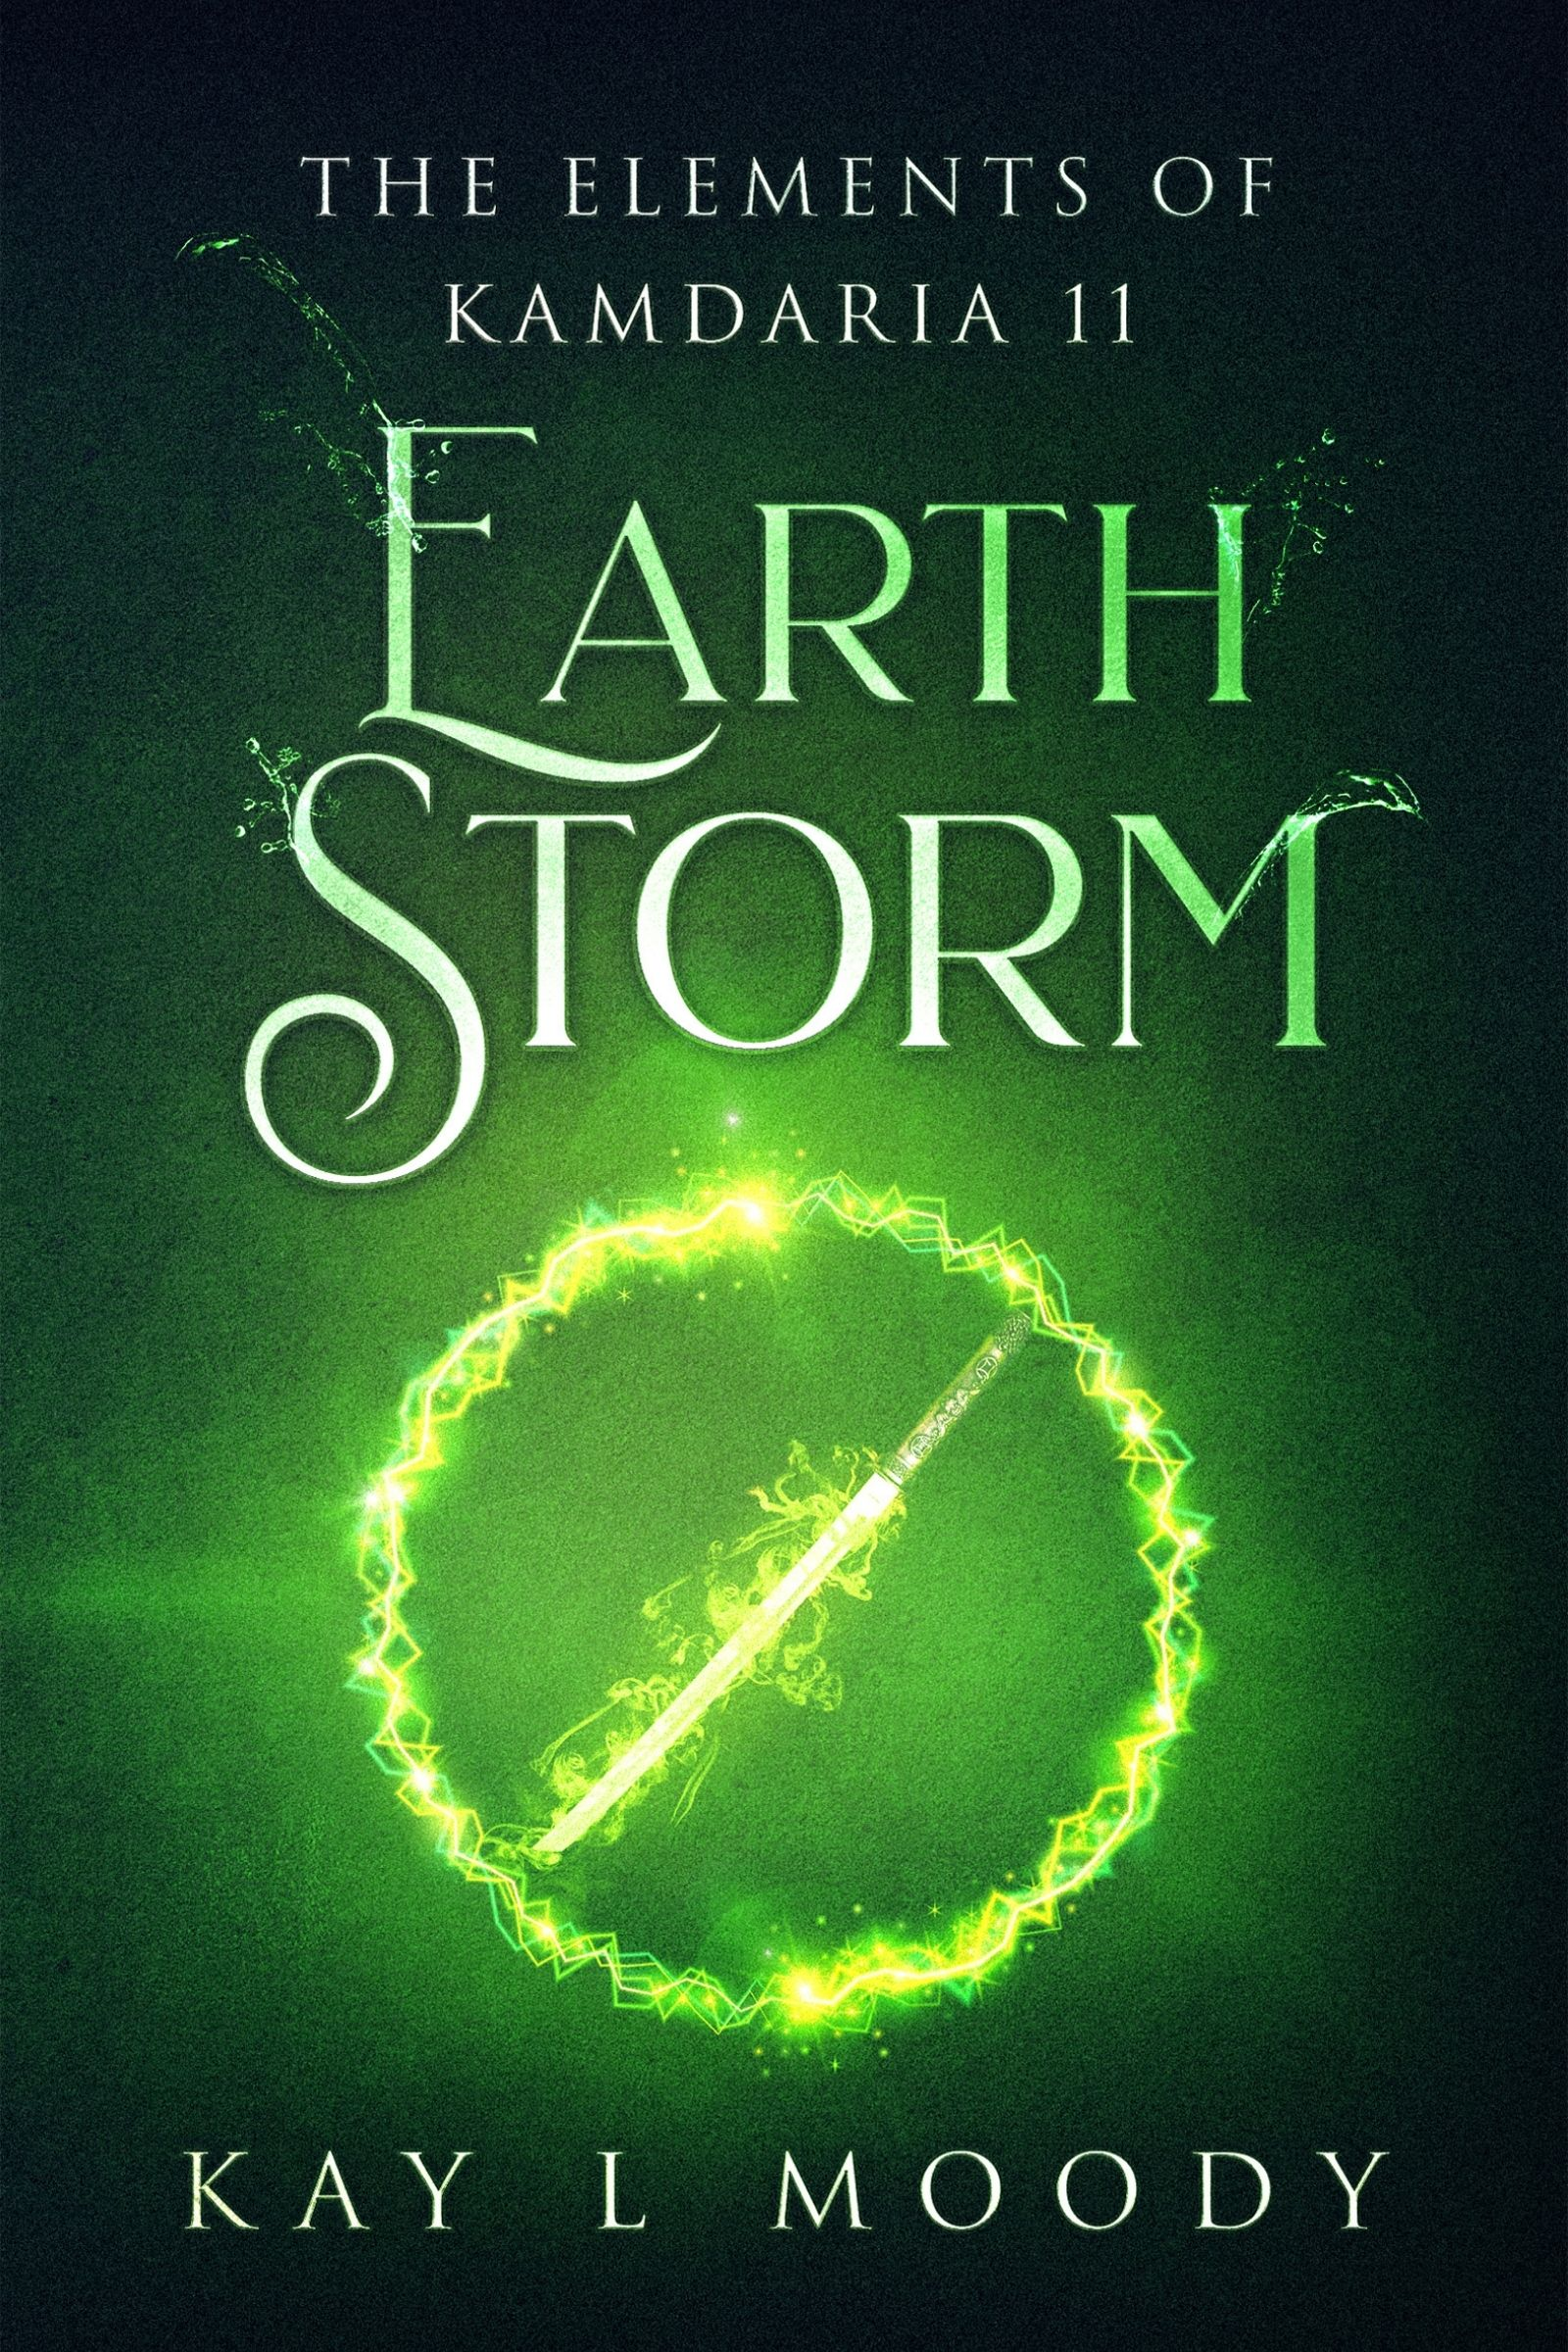 Earth Storm (The Elements of Kamdaria Book 11) by Kay L Moody. Talise is ready to change the empire, but she might not have the strength to do it.